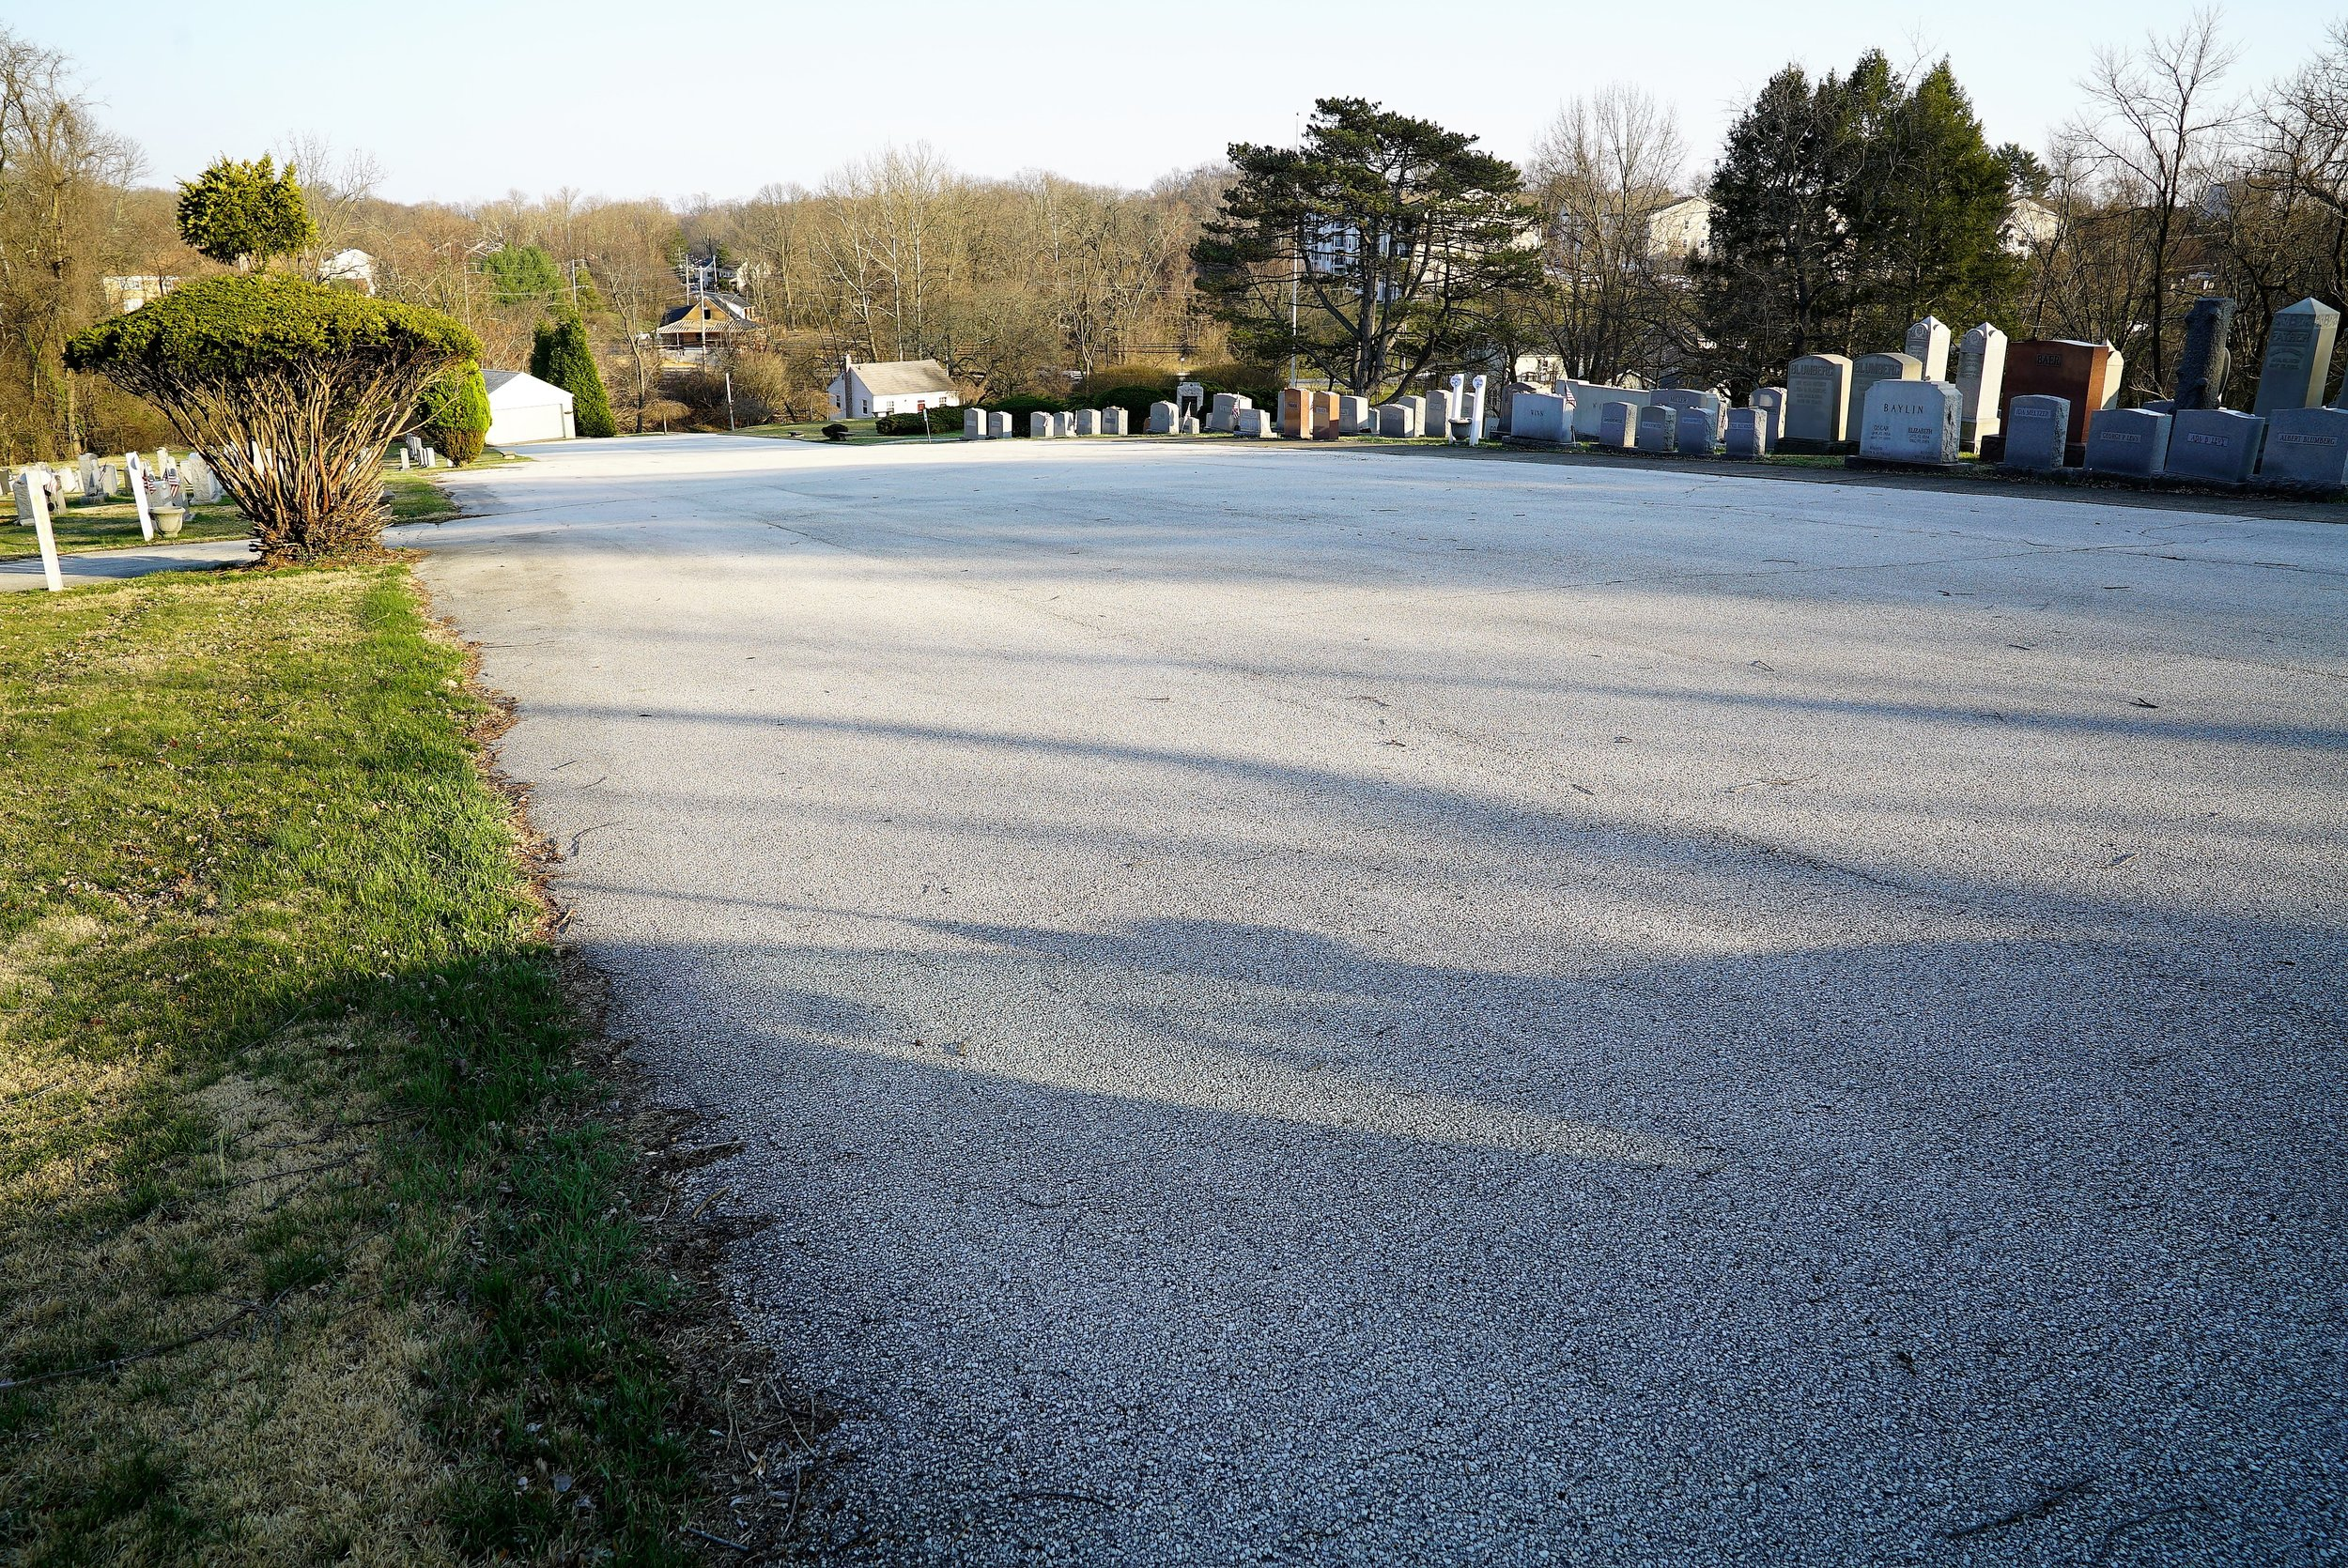 Ample parking at Ohev Shalom Cemetery in Brookhaven, PA. (Don't forget to engage your parking brake.)